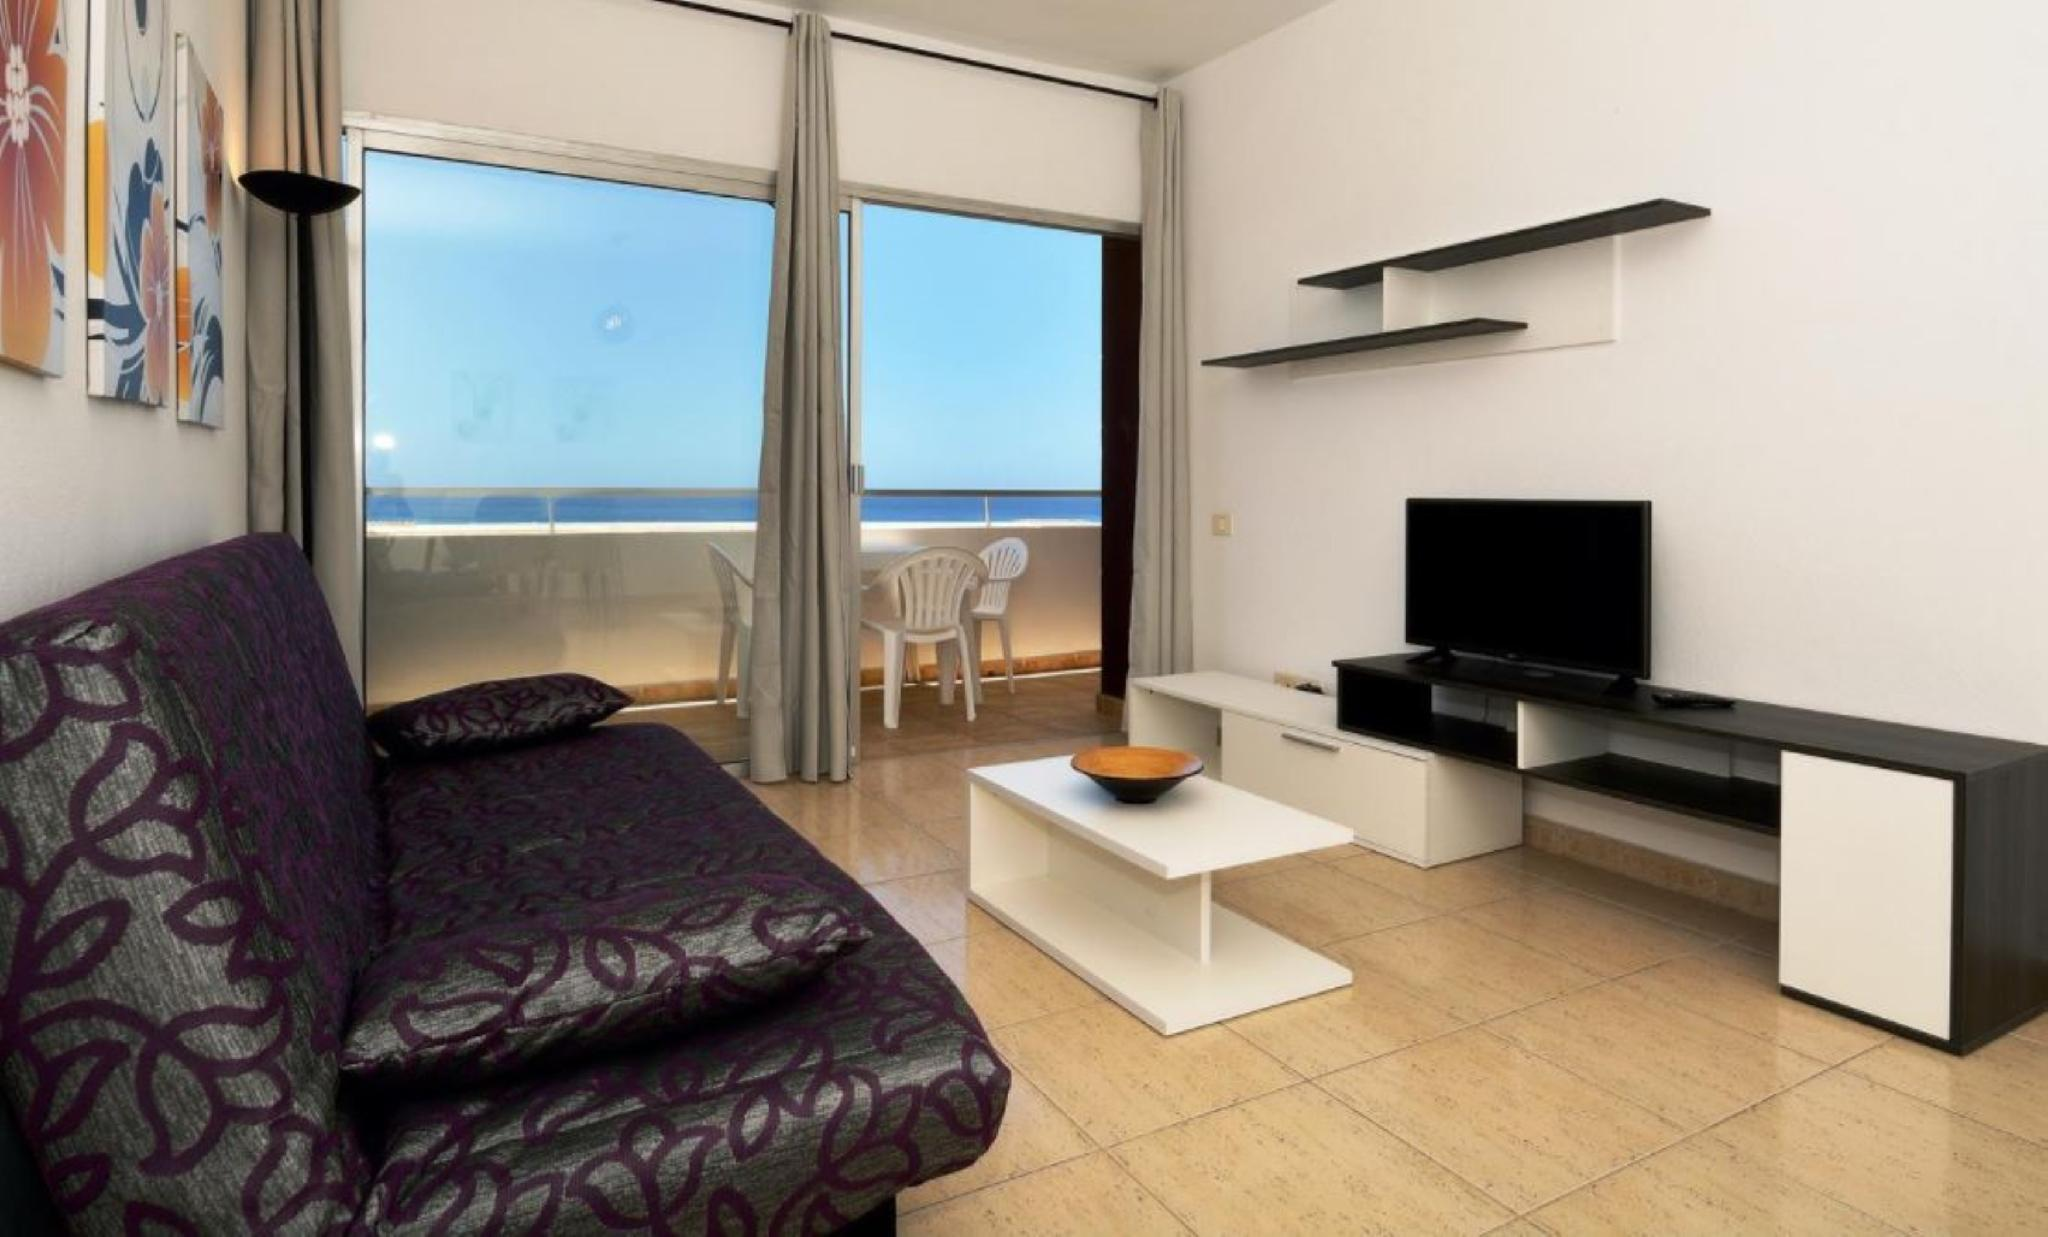 106124   Apartment In Morro Jable